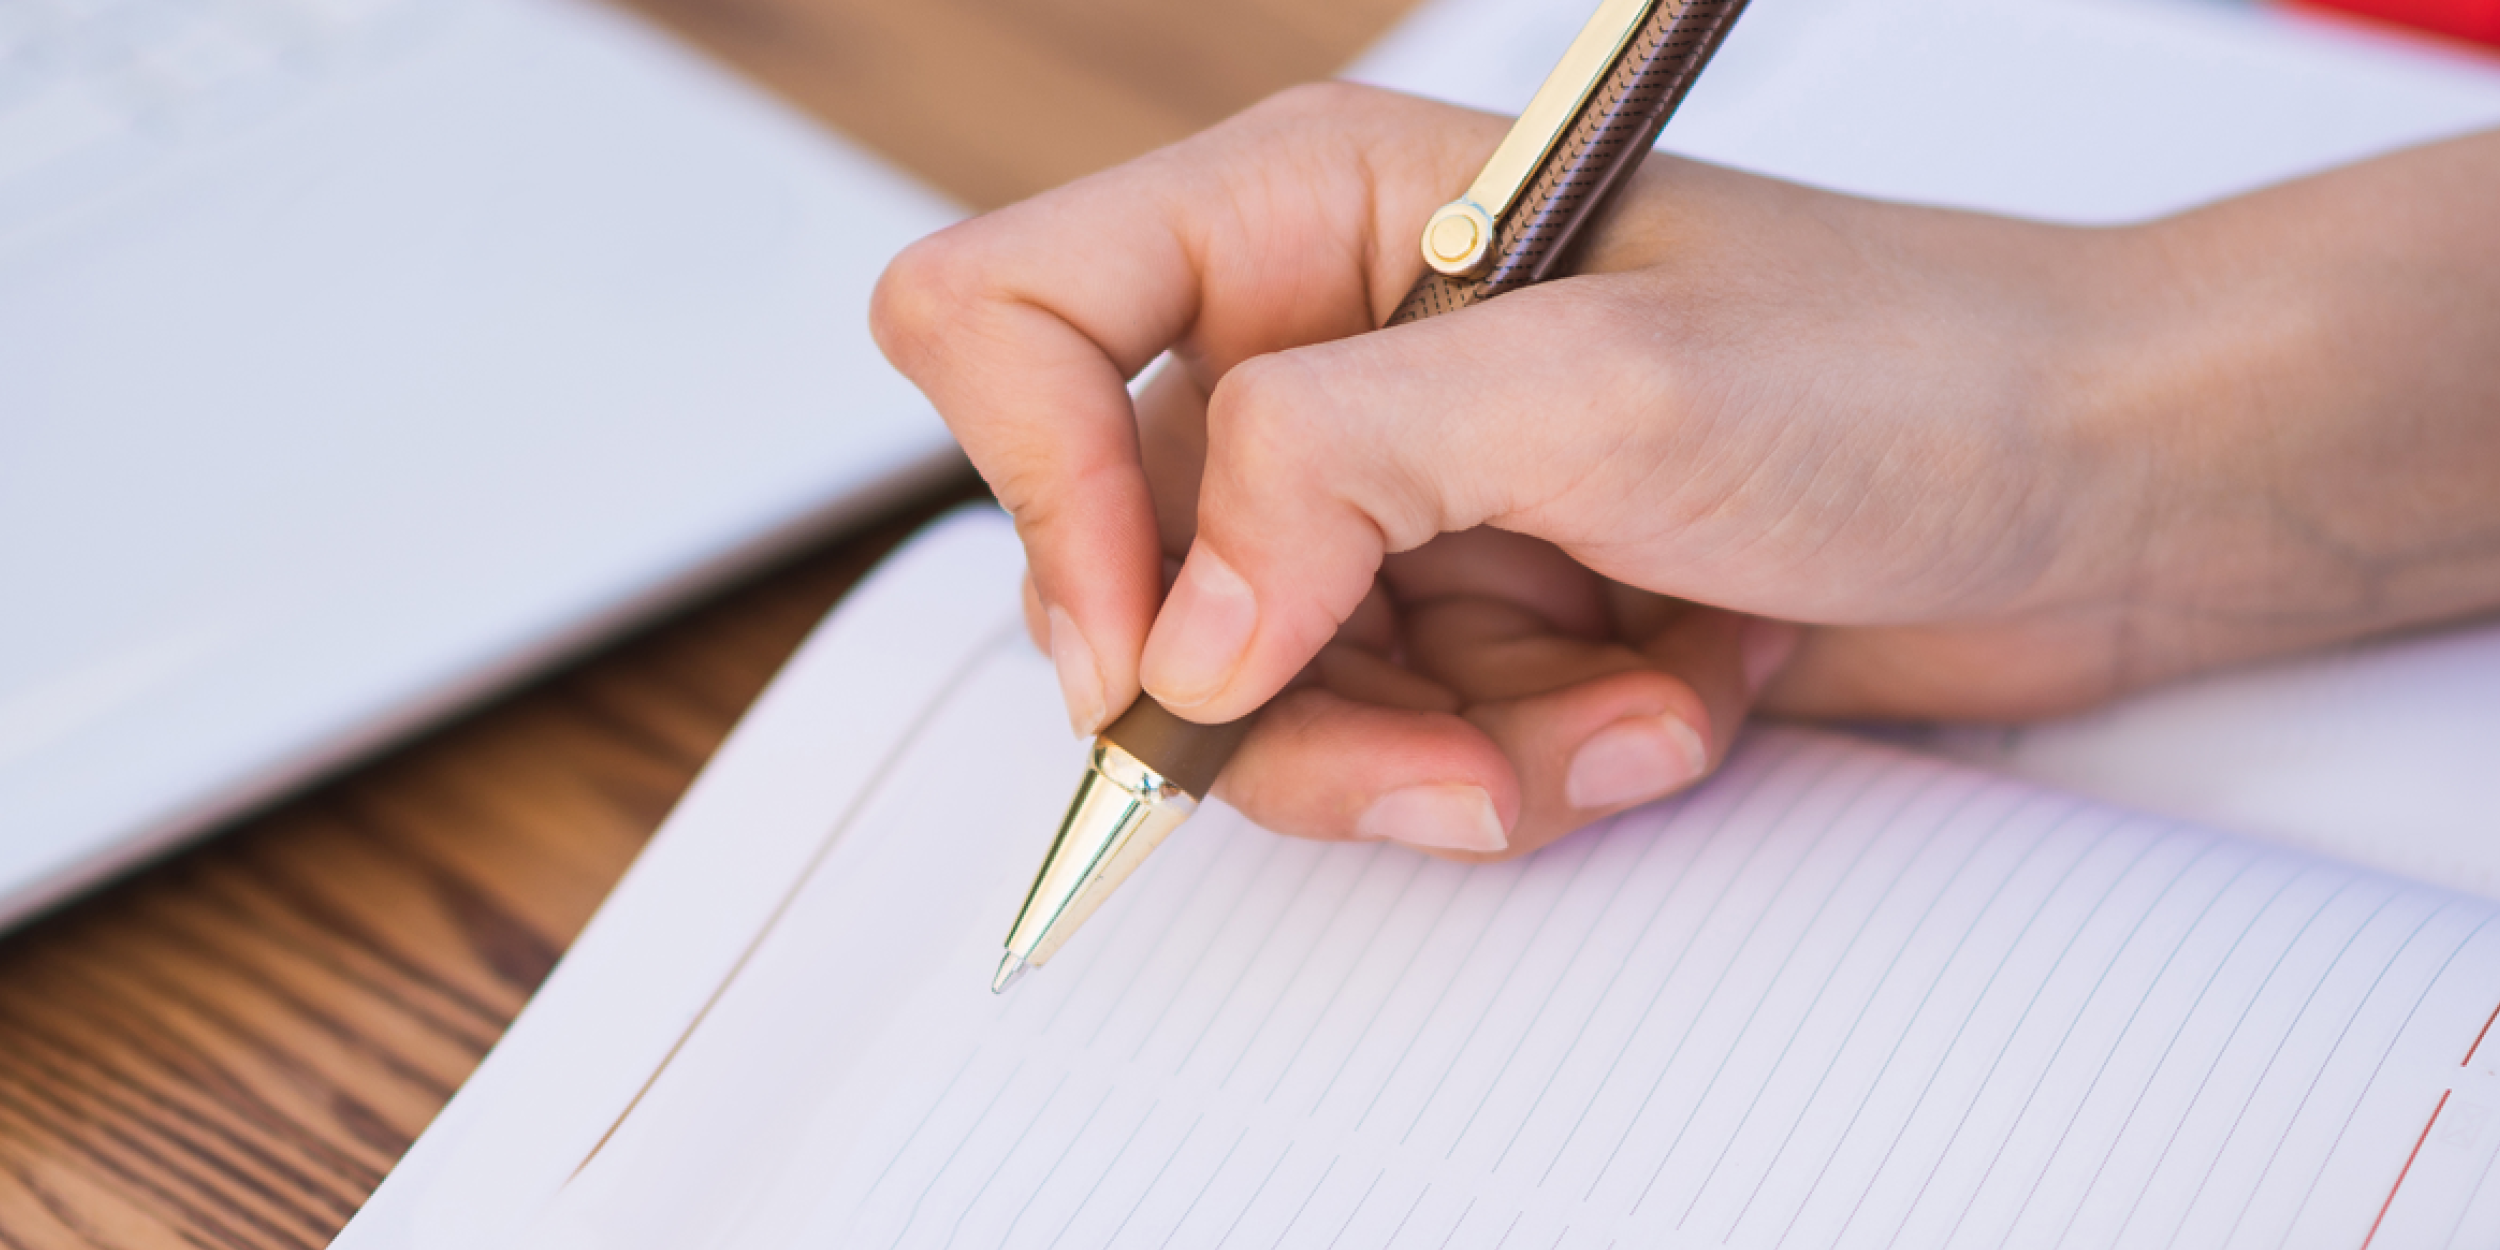 Person holding a pen about to write on some paper